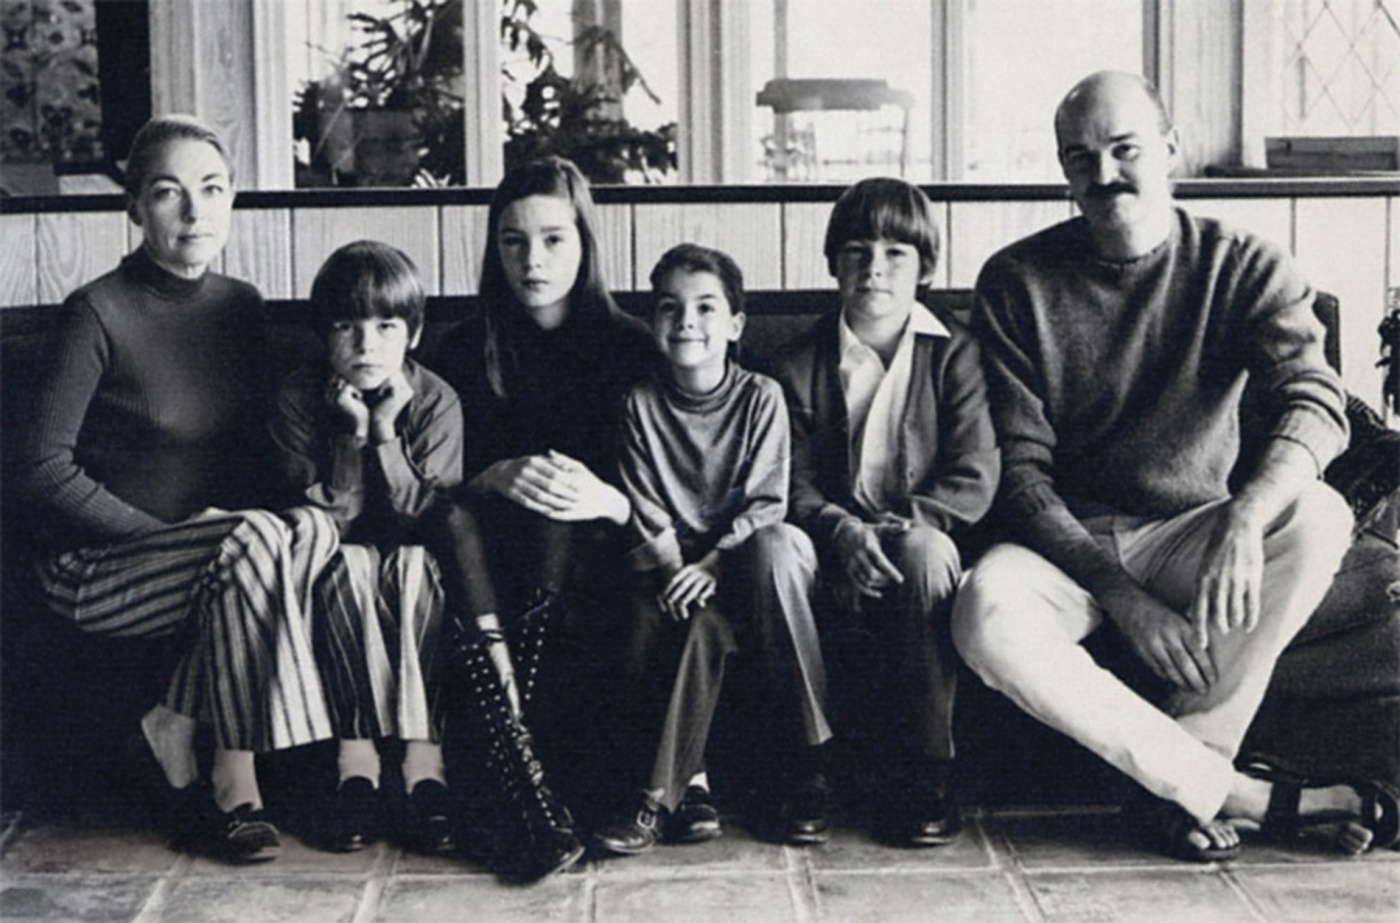 Richards (3rd from left) and family in Austin, 1970.